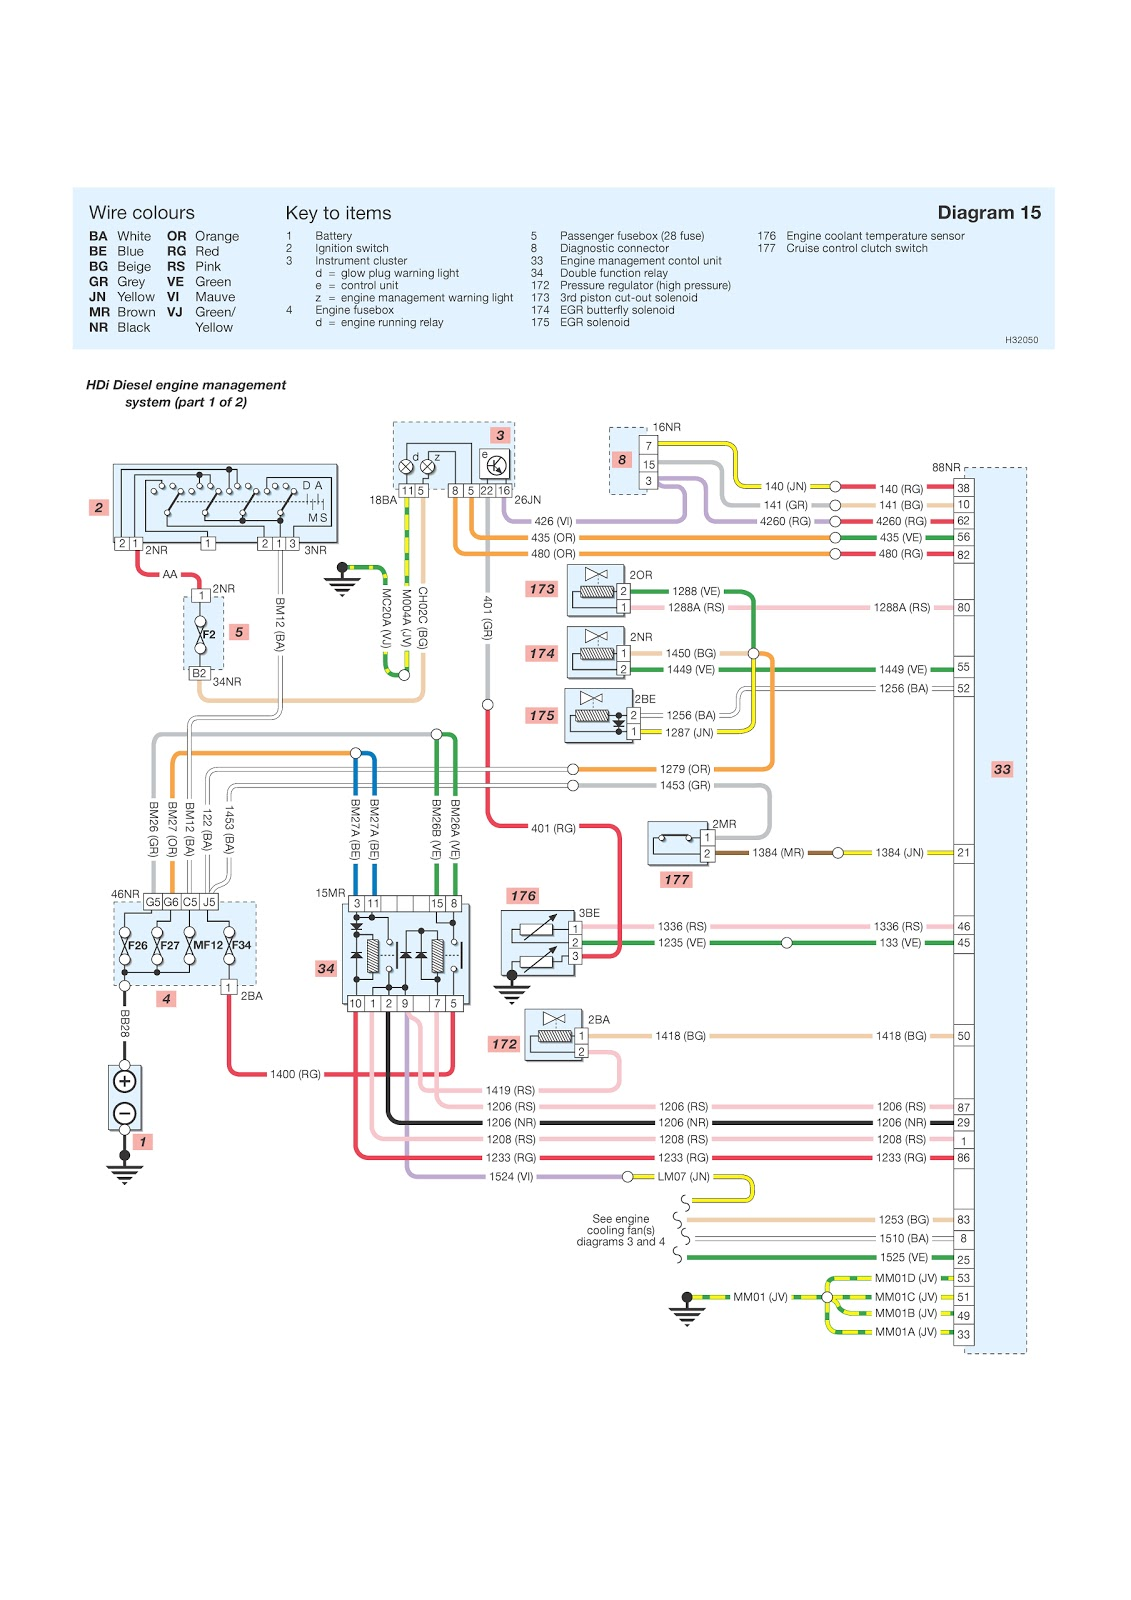 Terrific 206 Hdi Fuel System Diagram Also Electrical Single Line Diagram Wiring Cloud Ittabisraaidewilluminateatxorg